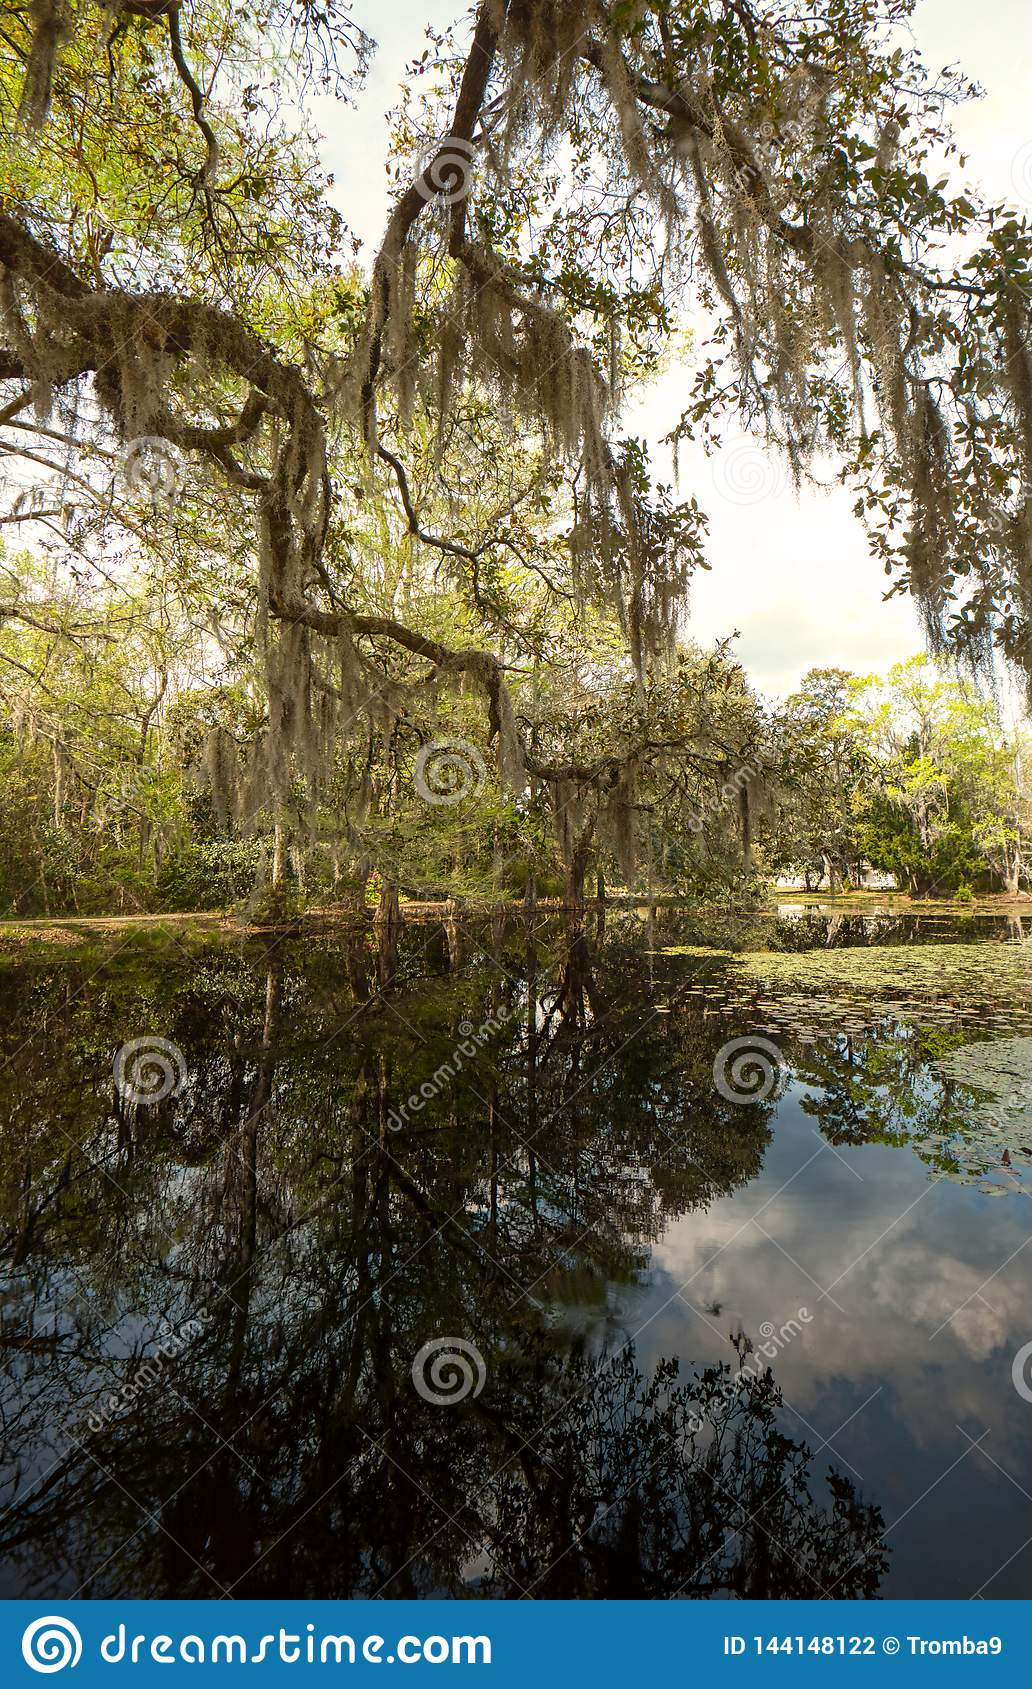 A landscape of live oaks, cypress trees, Spanish moss and reflections in a calm pond.